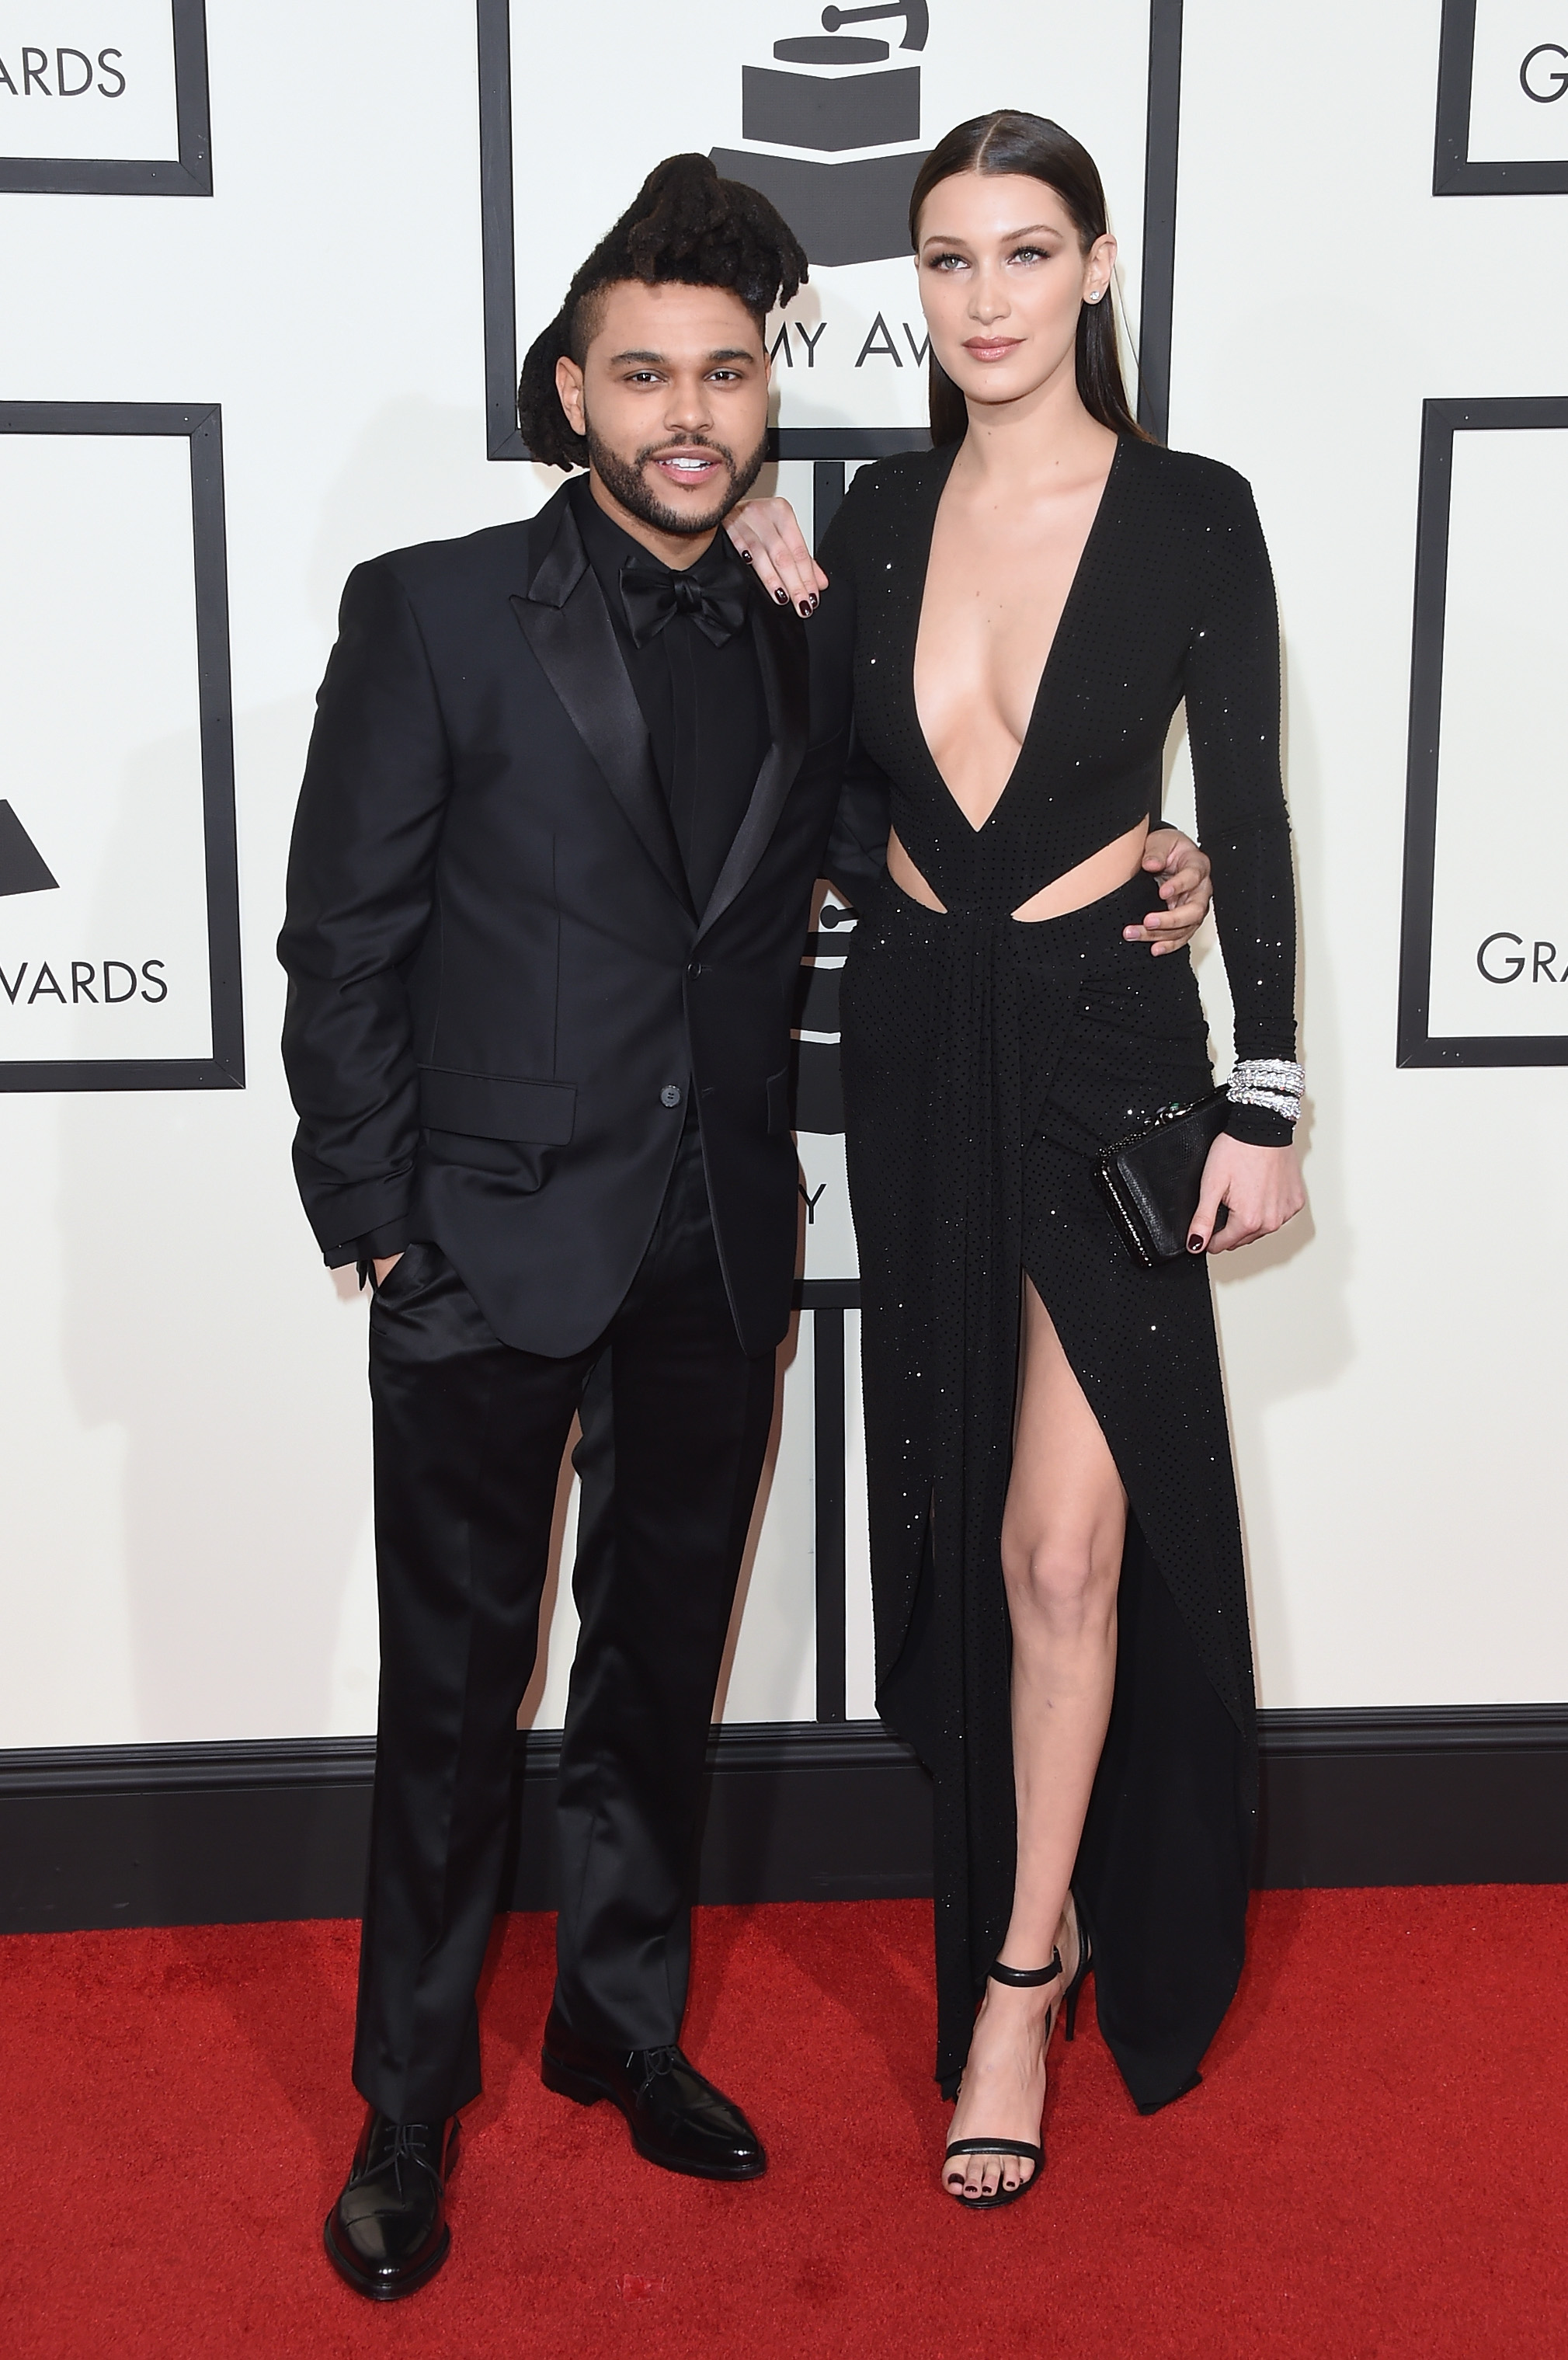 The Weeknd, left, and Bella Hadid, right, attend the 58th GRAMMY Awards at Staples Center on Feb. 15, 2016 in Los Angeles.